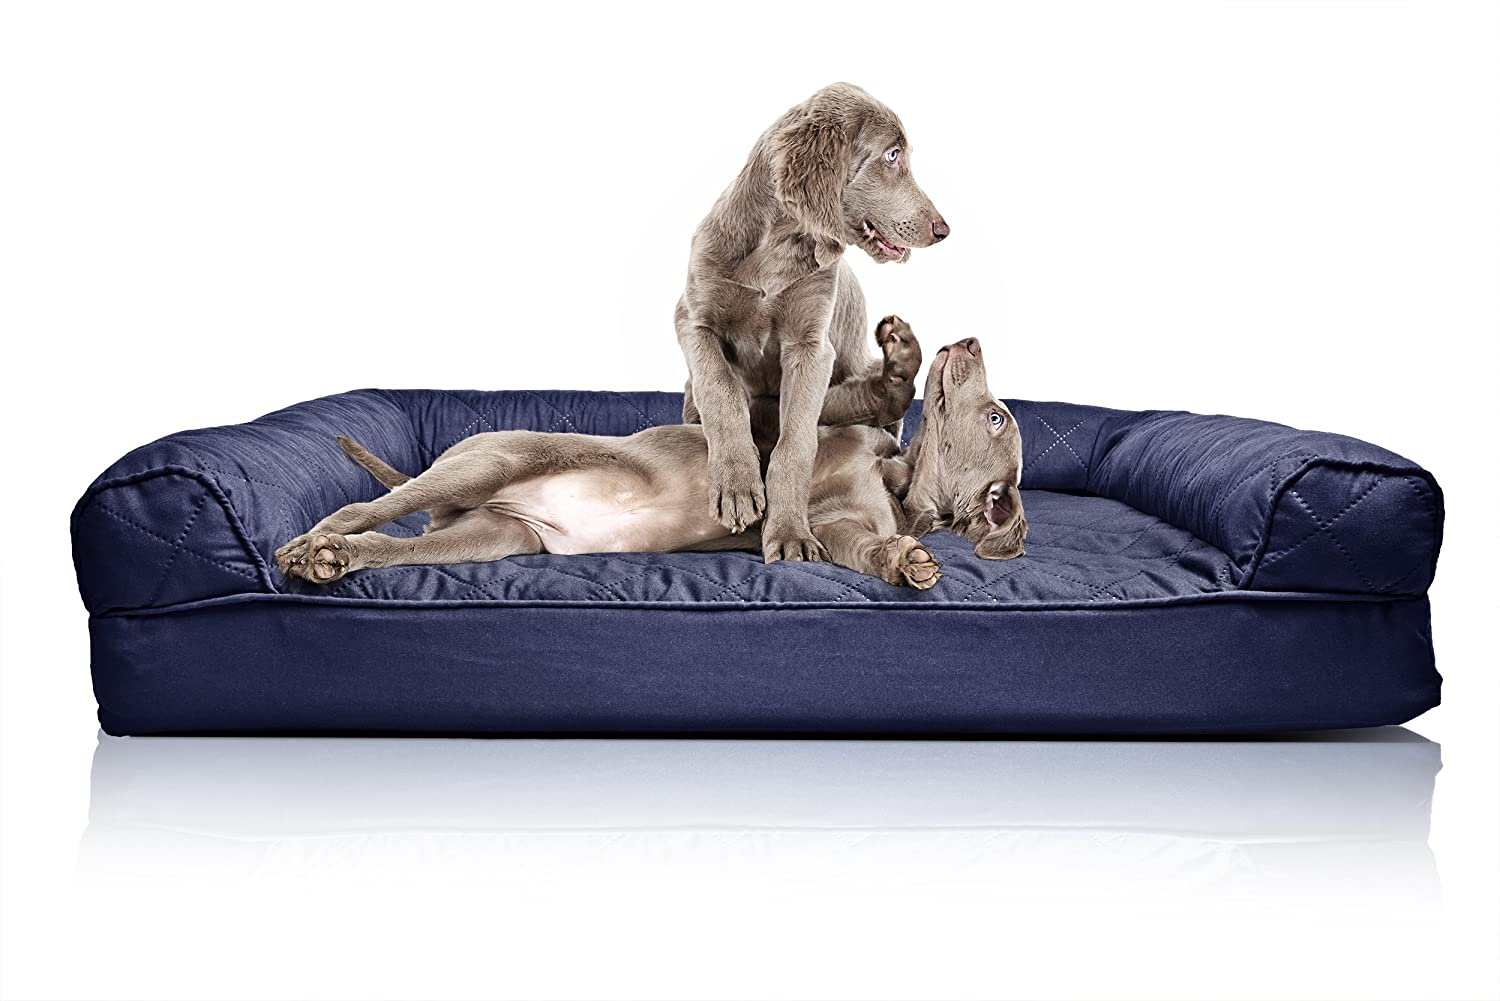 Amazon.com : FurHaven Jumbo Quilted Orthopedic Sofa Pet Bed For Dogs And  Cats, Navy : Pet Supplies